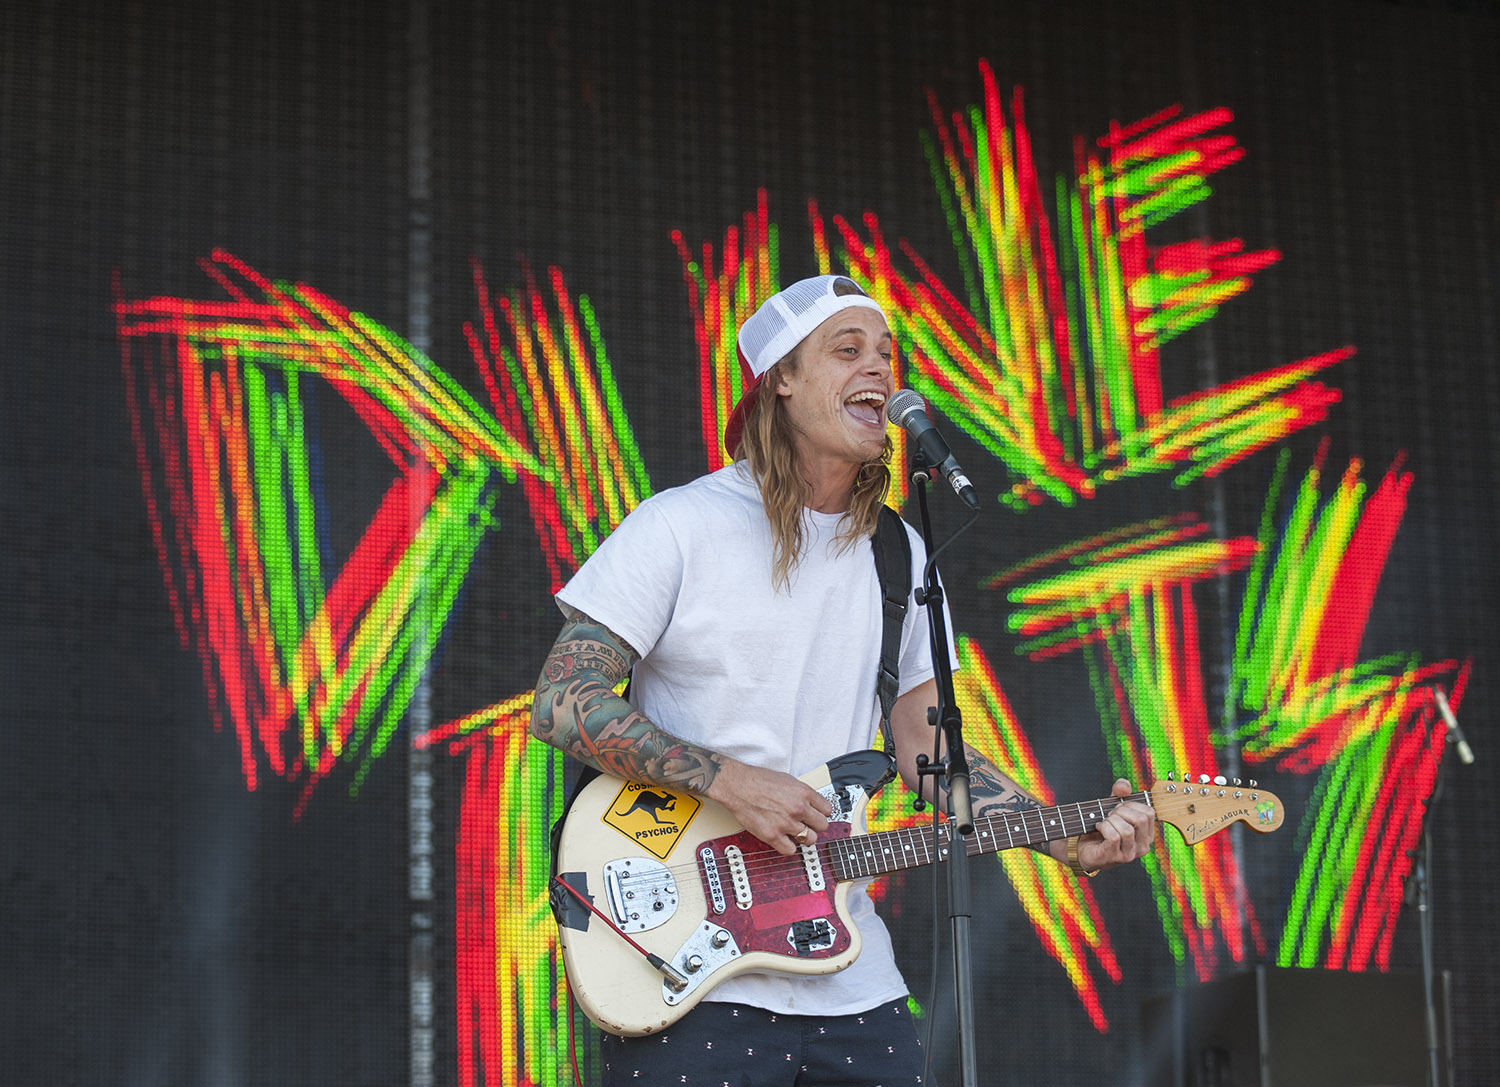 Danny Beusar, singer and guitarist for Brisbane based Dune Rats rocks out on day two of the 2015 Falls Festival - image courtesy of Kirsty Umback.